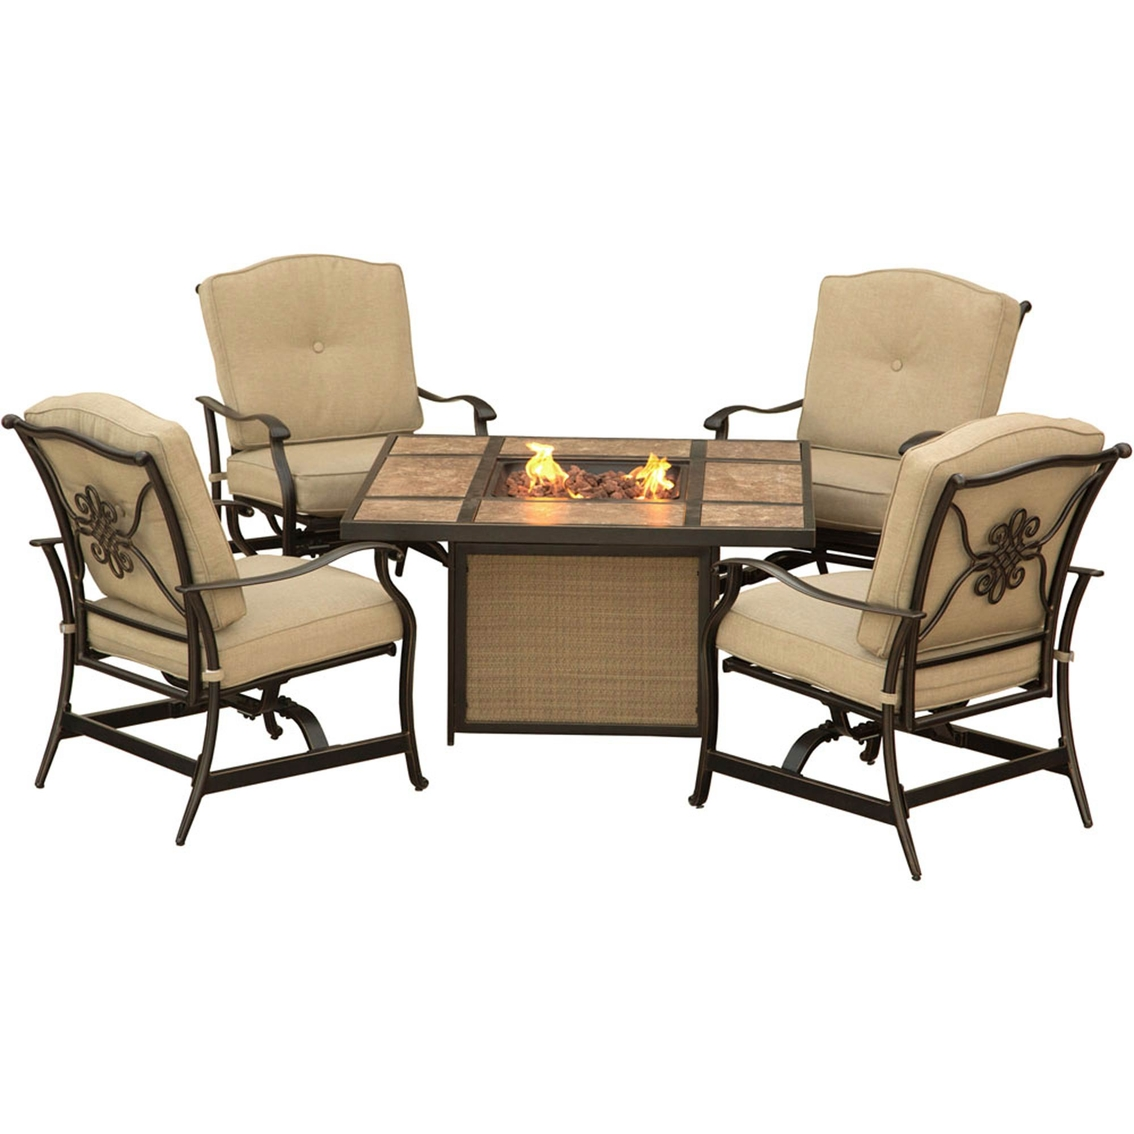 Hanover outdoor furniture traditions 5 pc lounge set with tile top fire pit